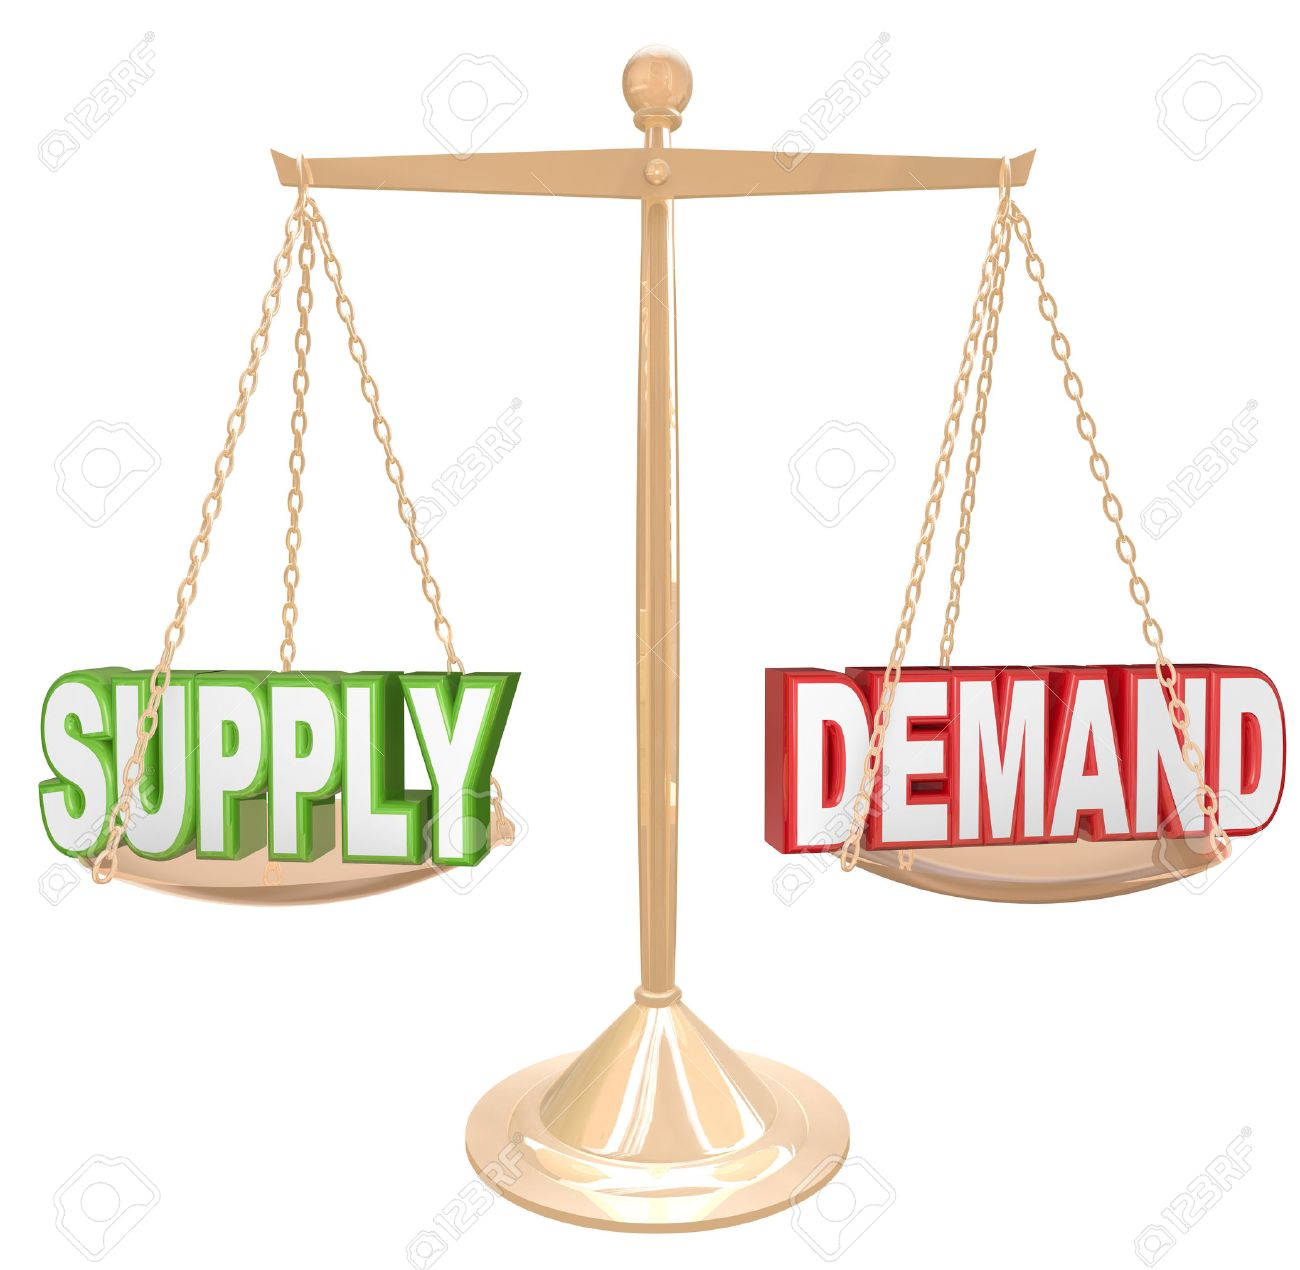 Supply and demand clipart 3 » Clipart Station.